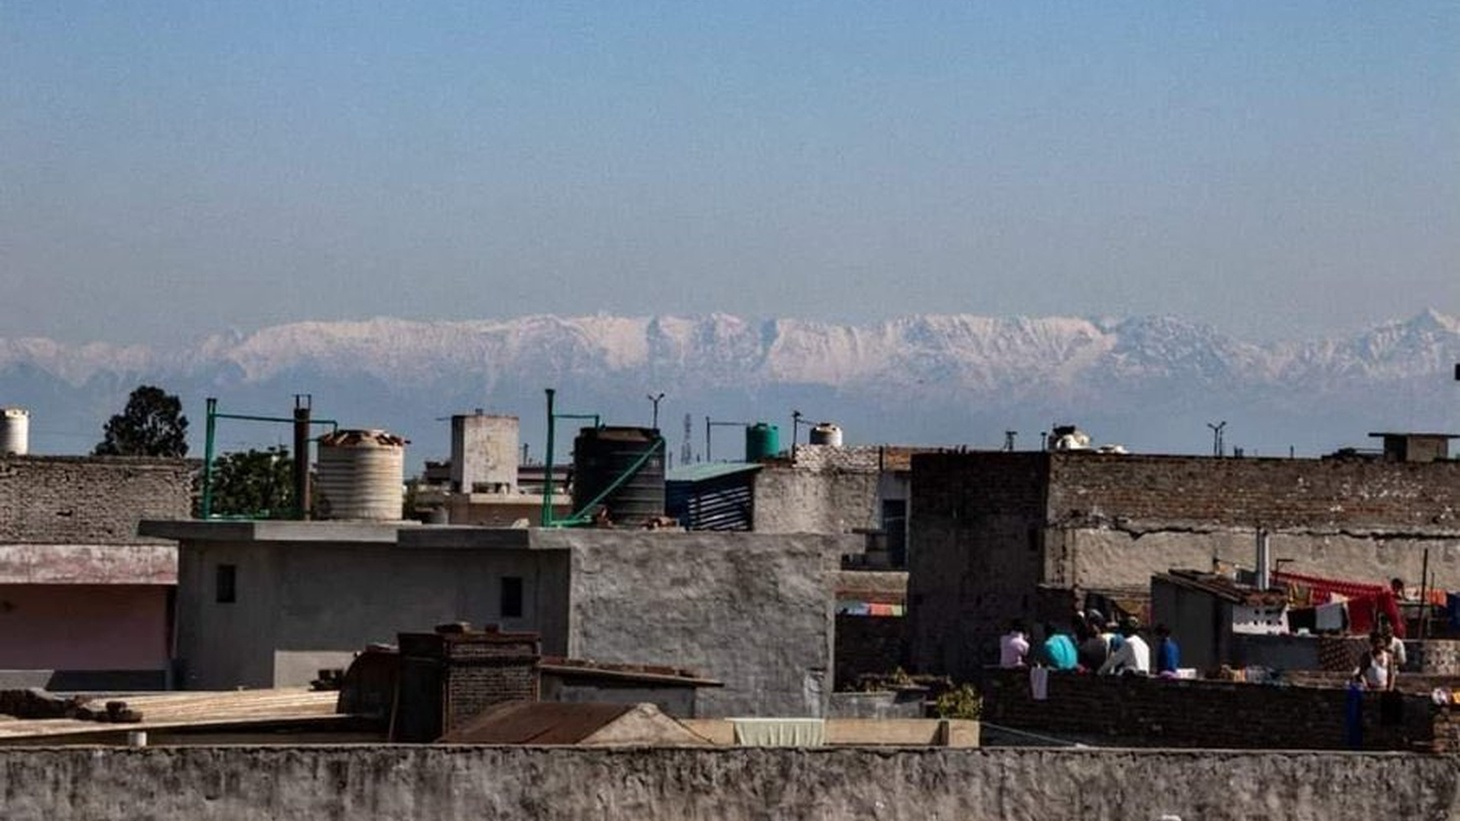 Dhauladhar mountain range of Himachal, visible after 30 yrs, from Jalandhar (Punjab) after pollution drops to its lowest level.